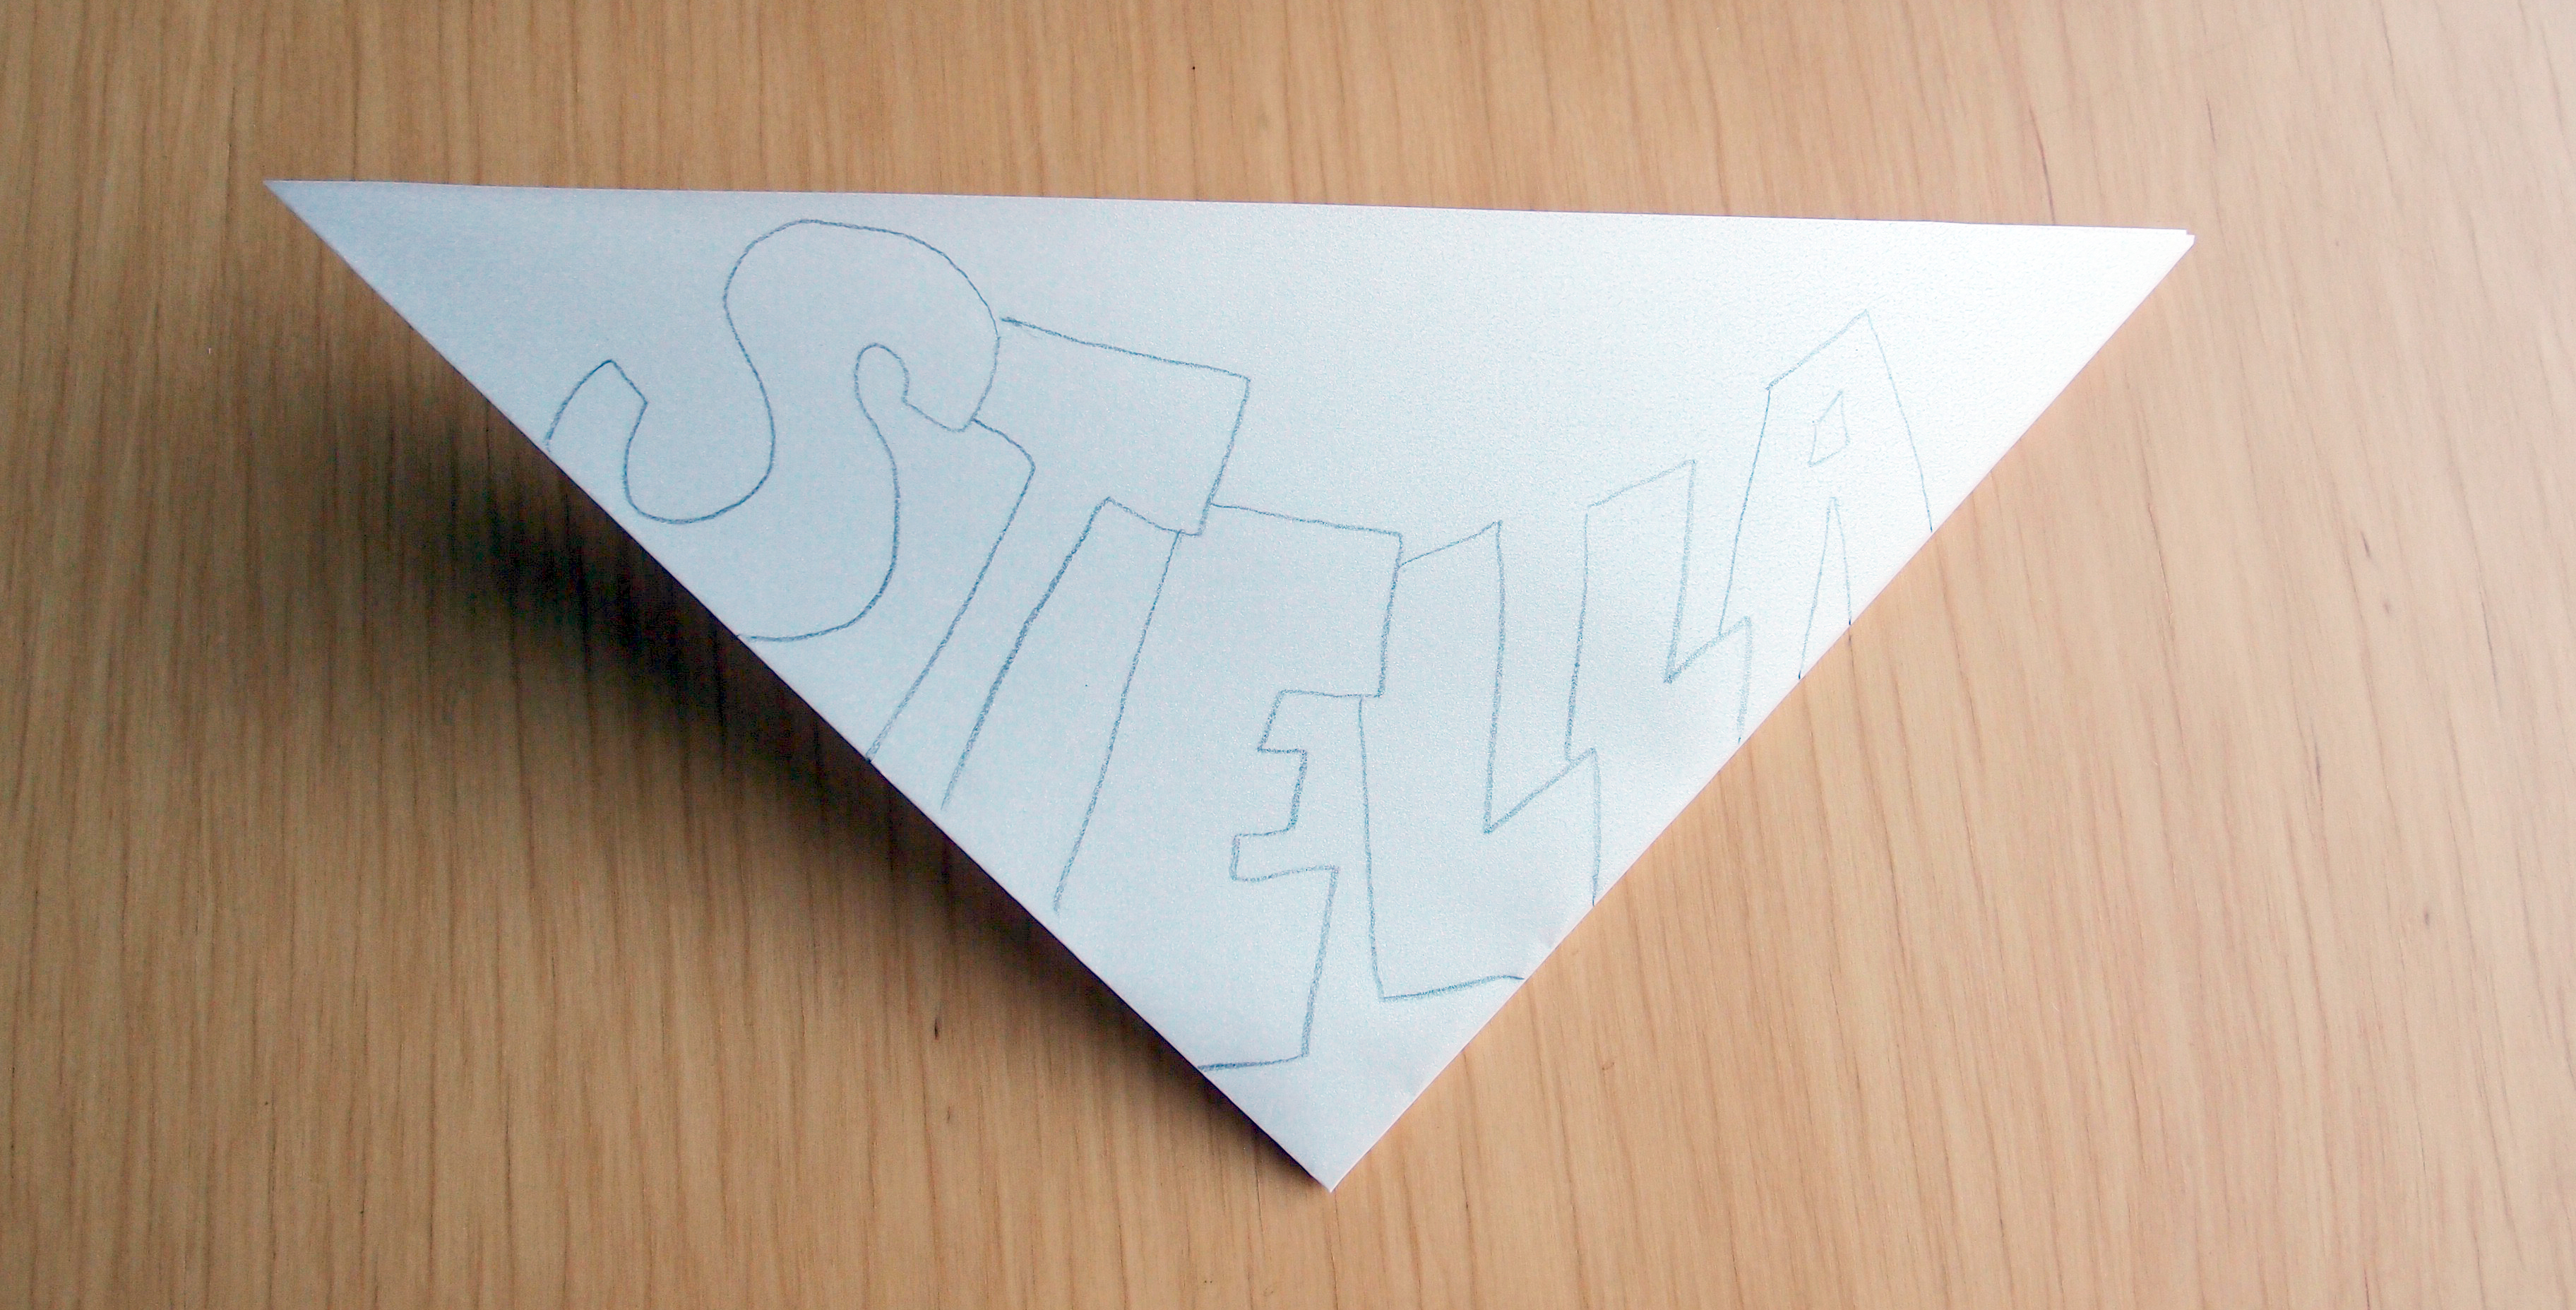 Stella's name on a snowflake